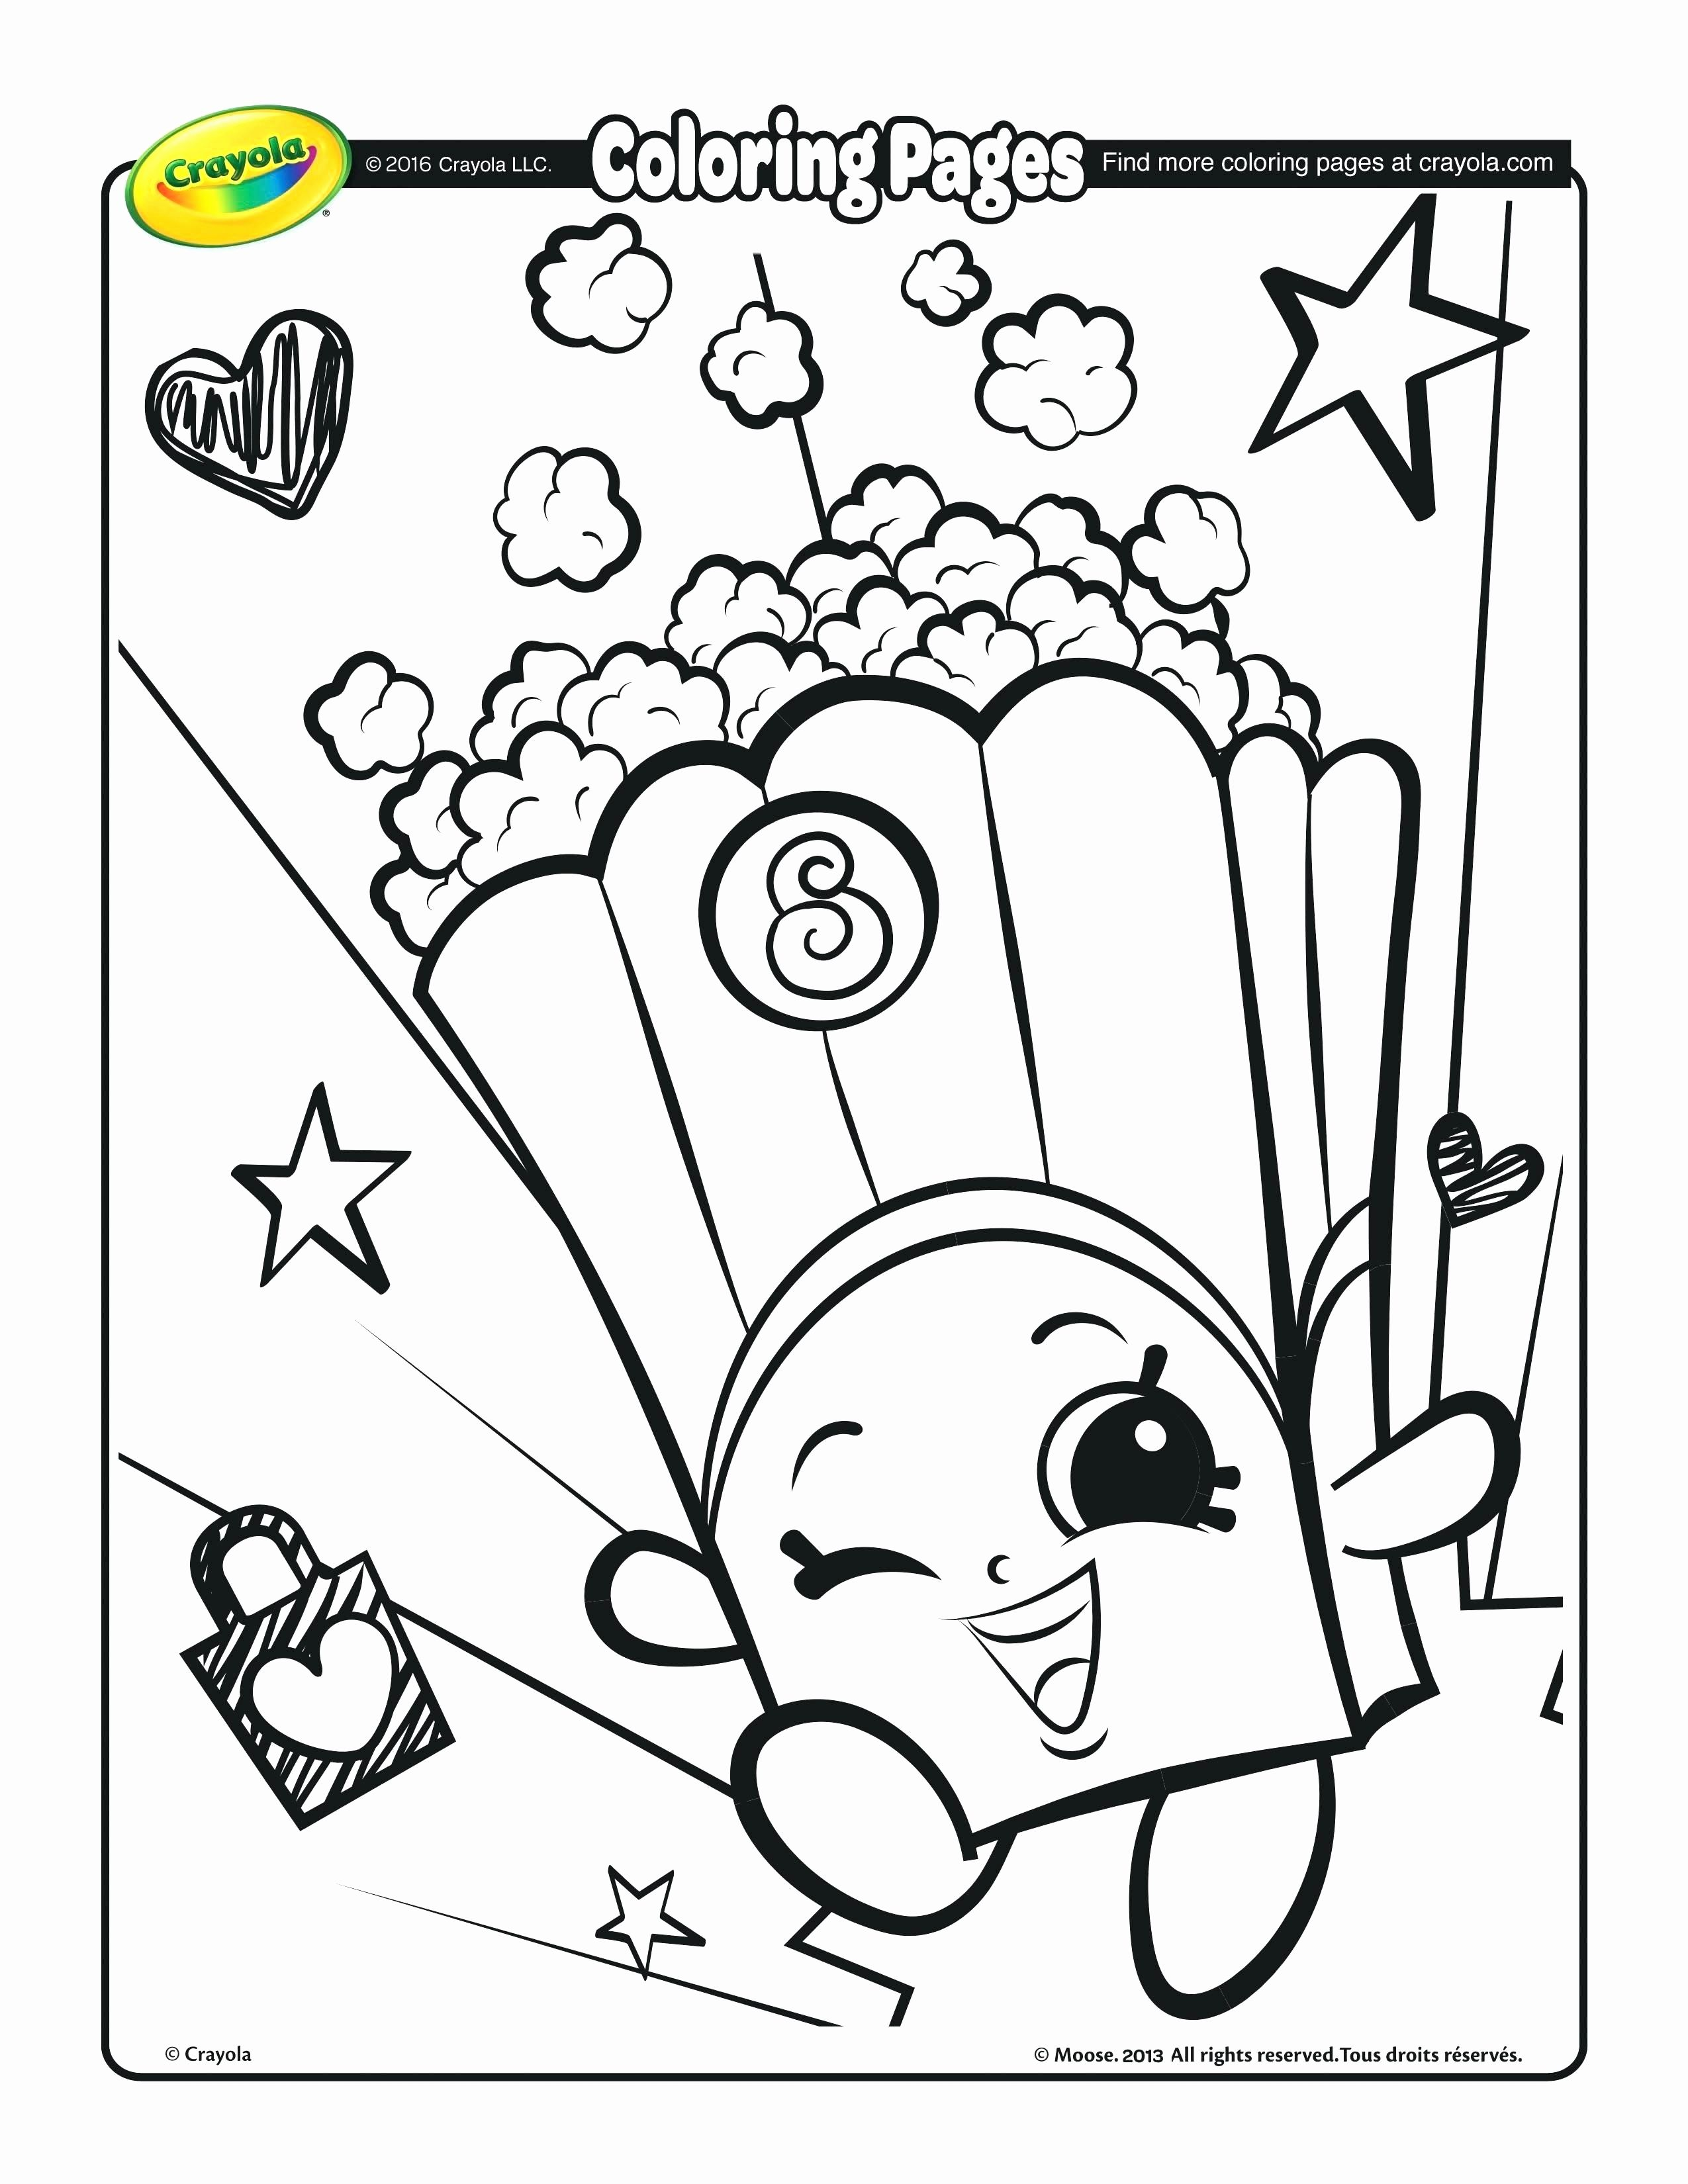 Crayola Coloring Pages Kid Christmas - Tripafethna